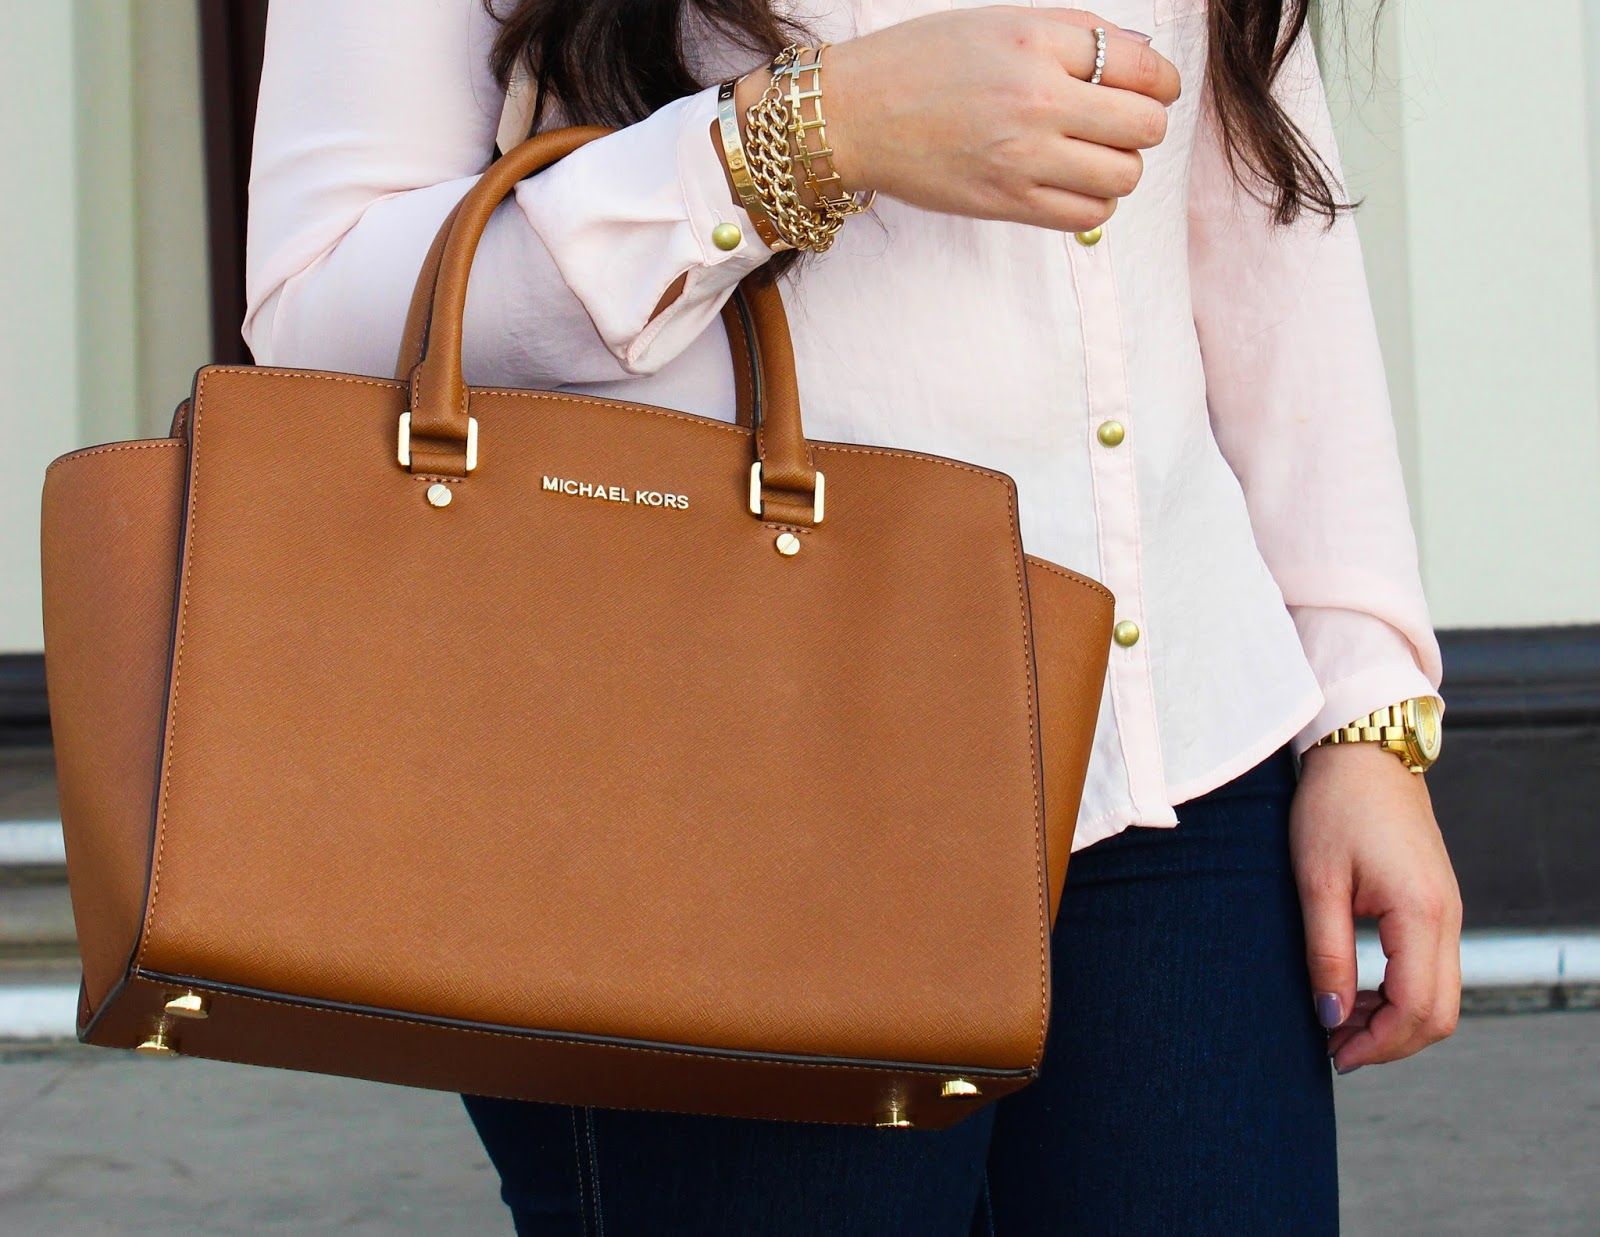 how to tell if a michael kors purse is real